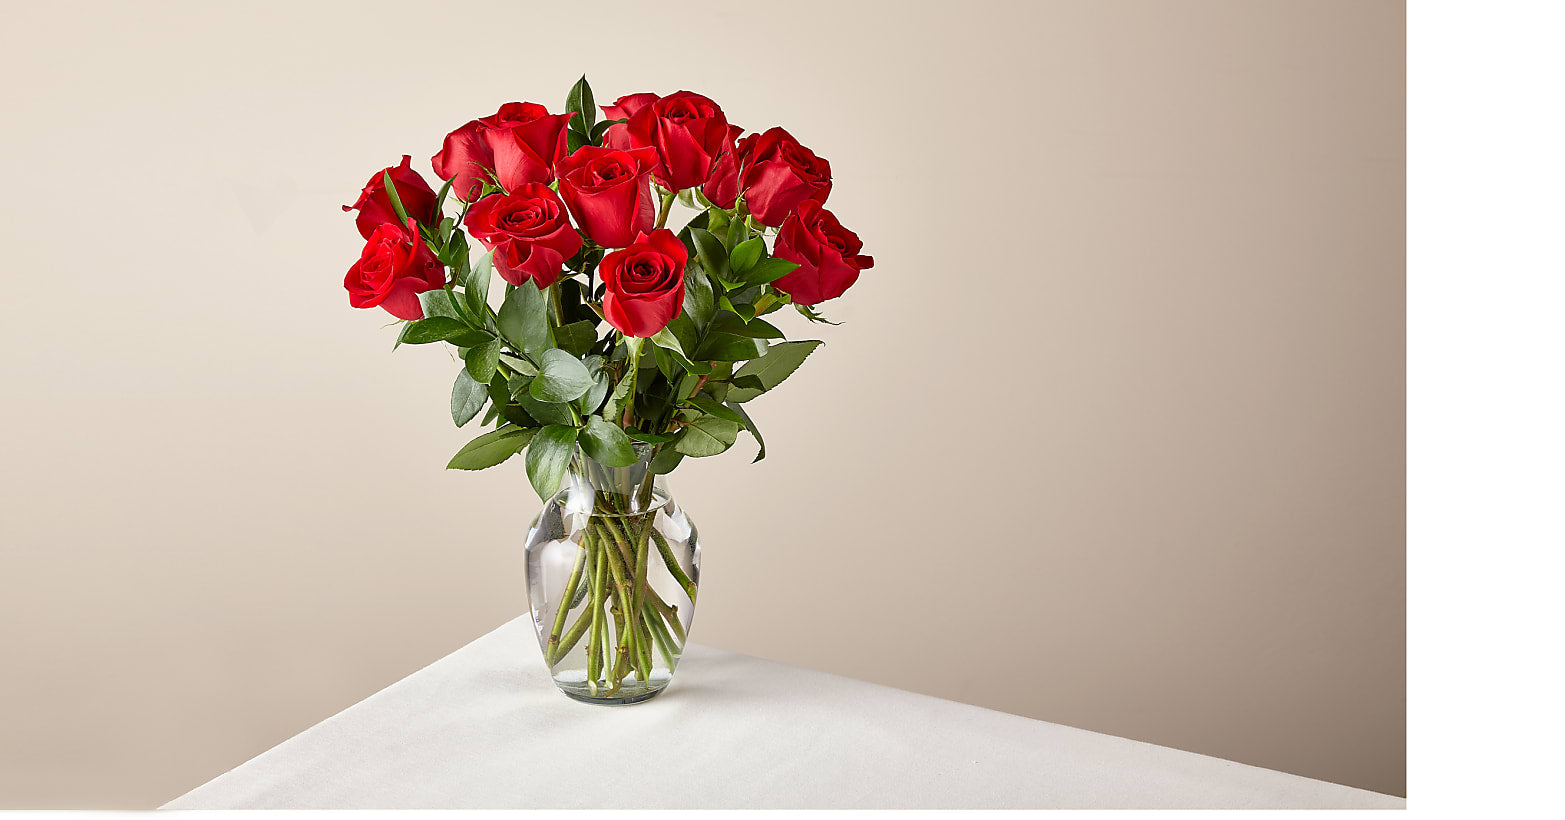 Red Rose Bouquet - Image 1 Of 4